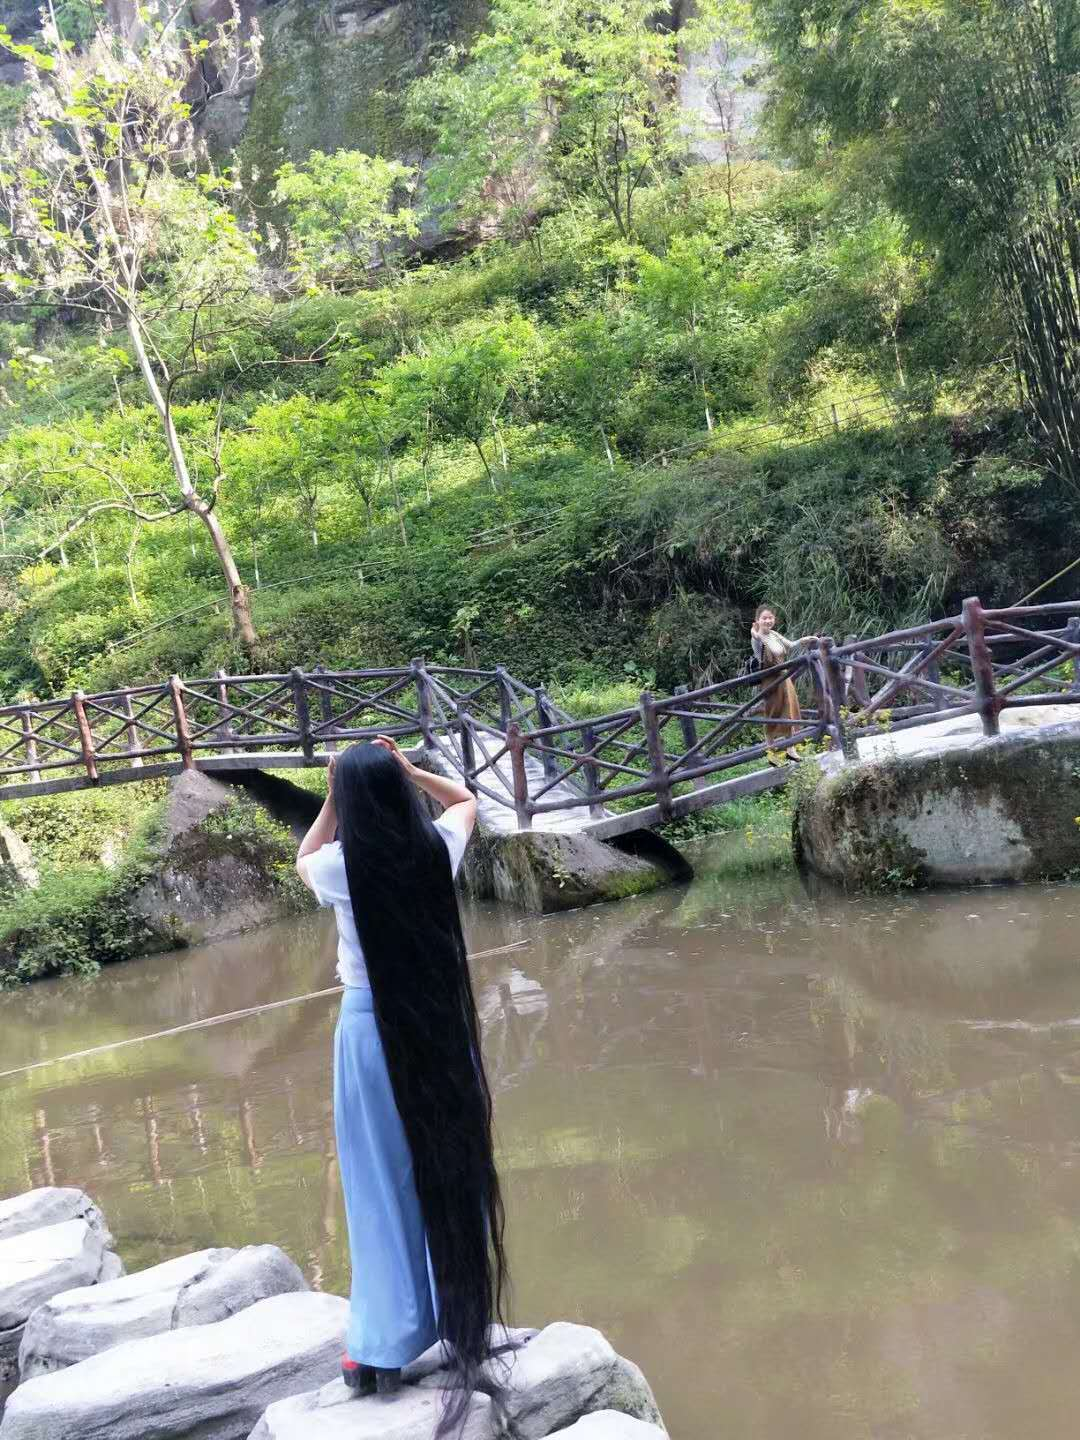 Floor length plus long hair stand near waterfall